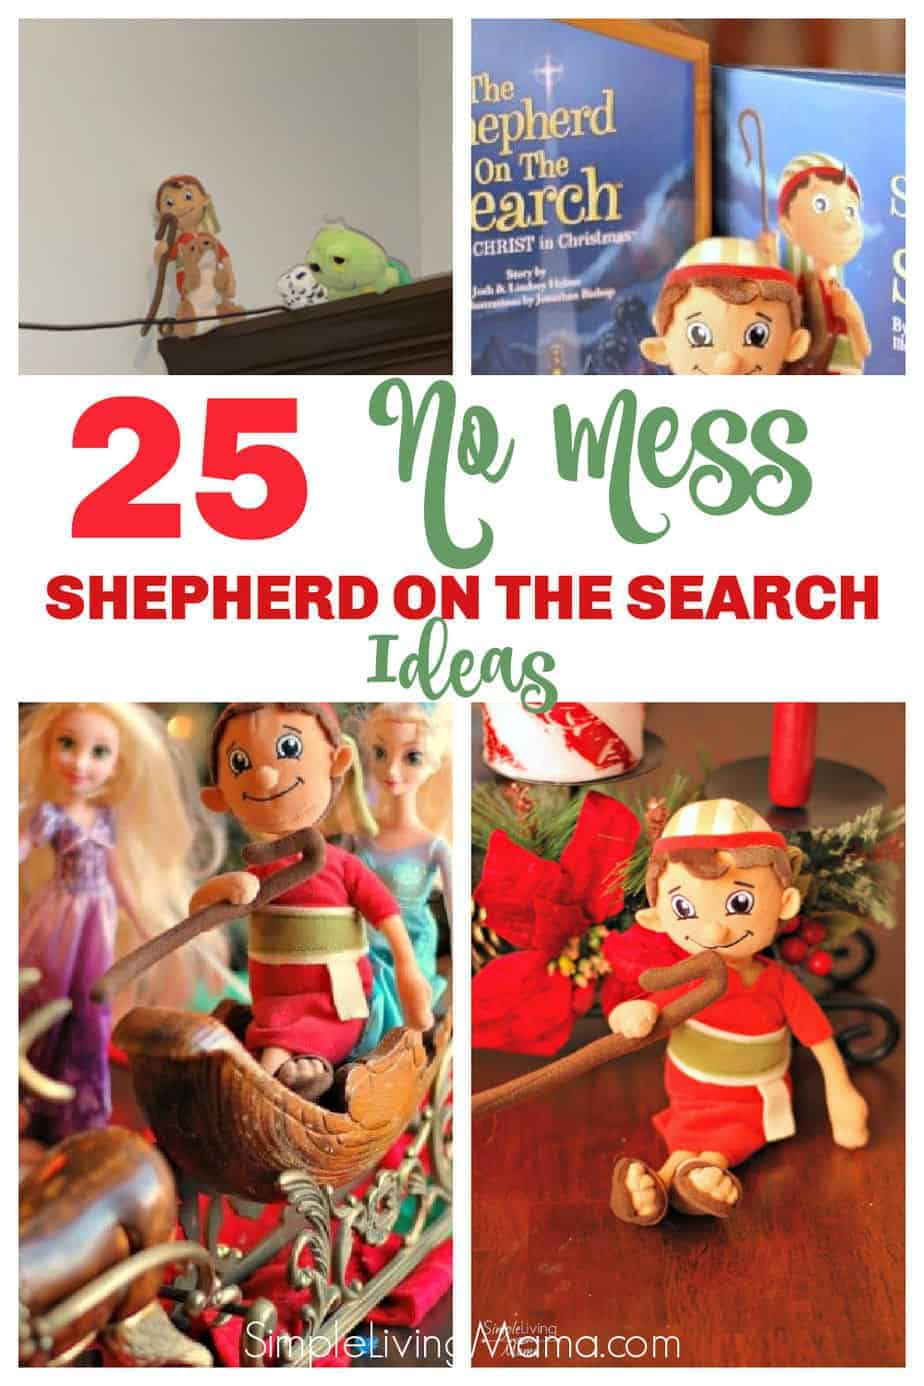 25 no mess shepherd on the search ideas